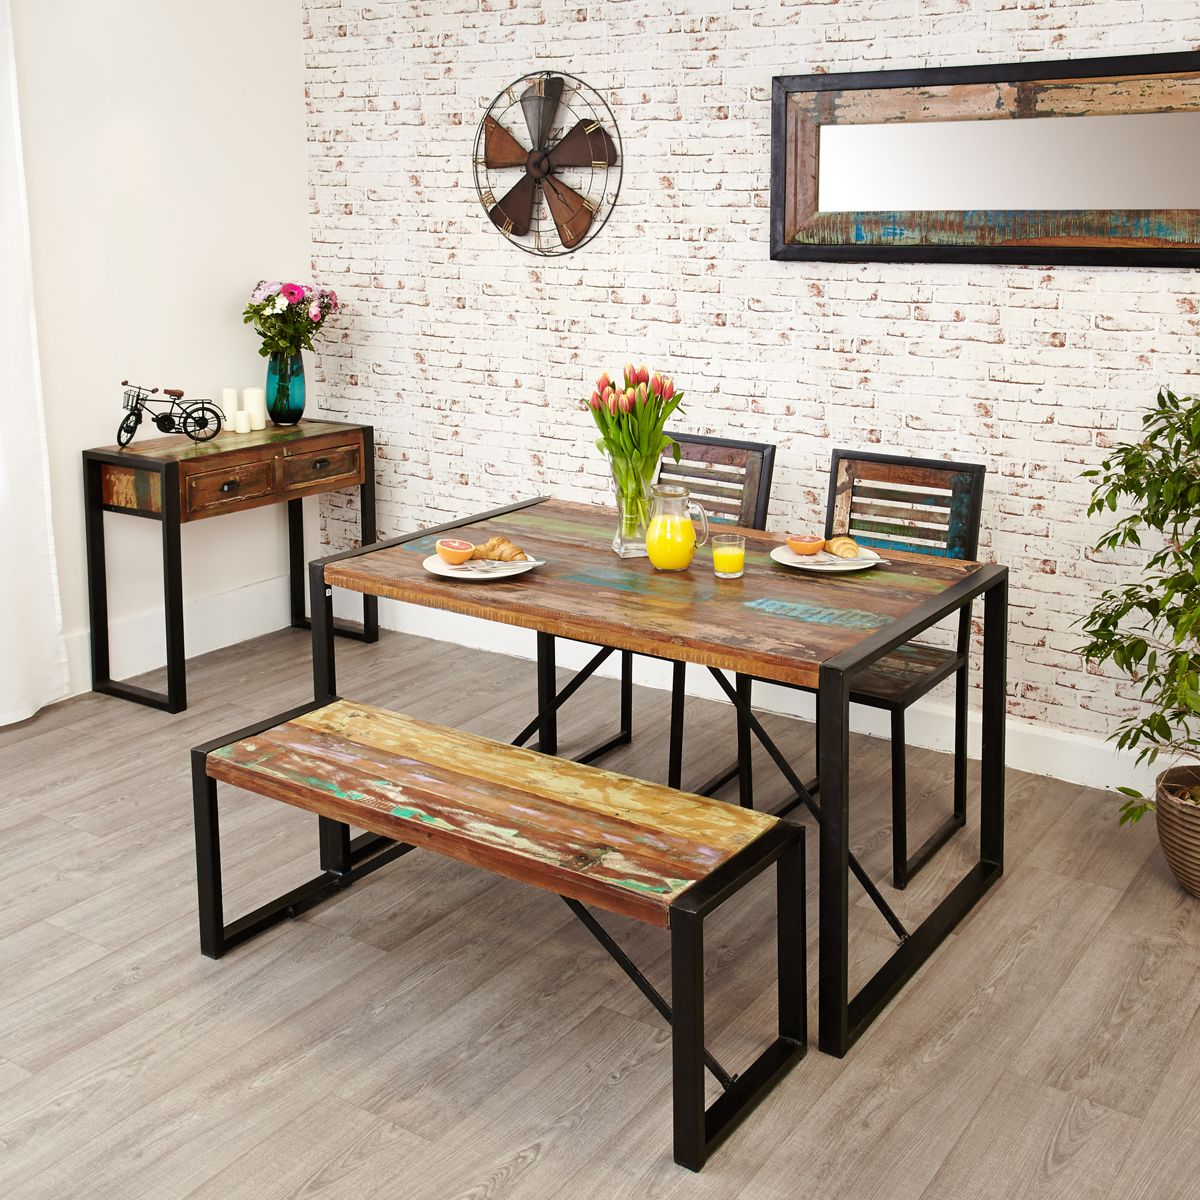 Planning the perfect dining table